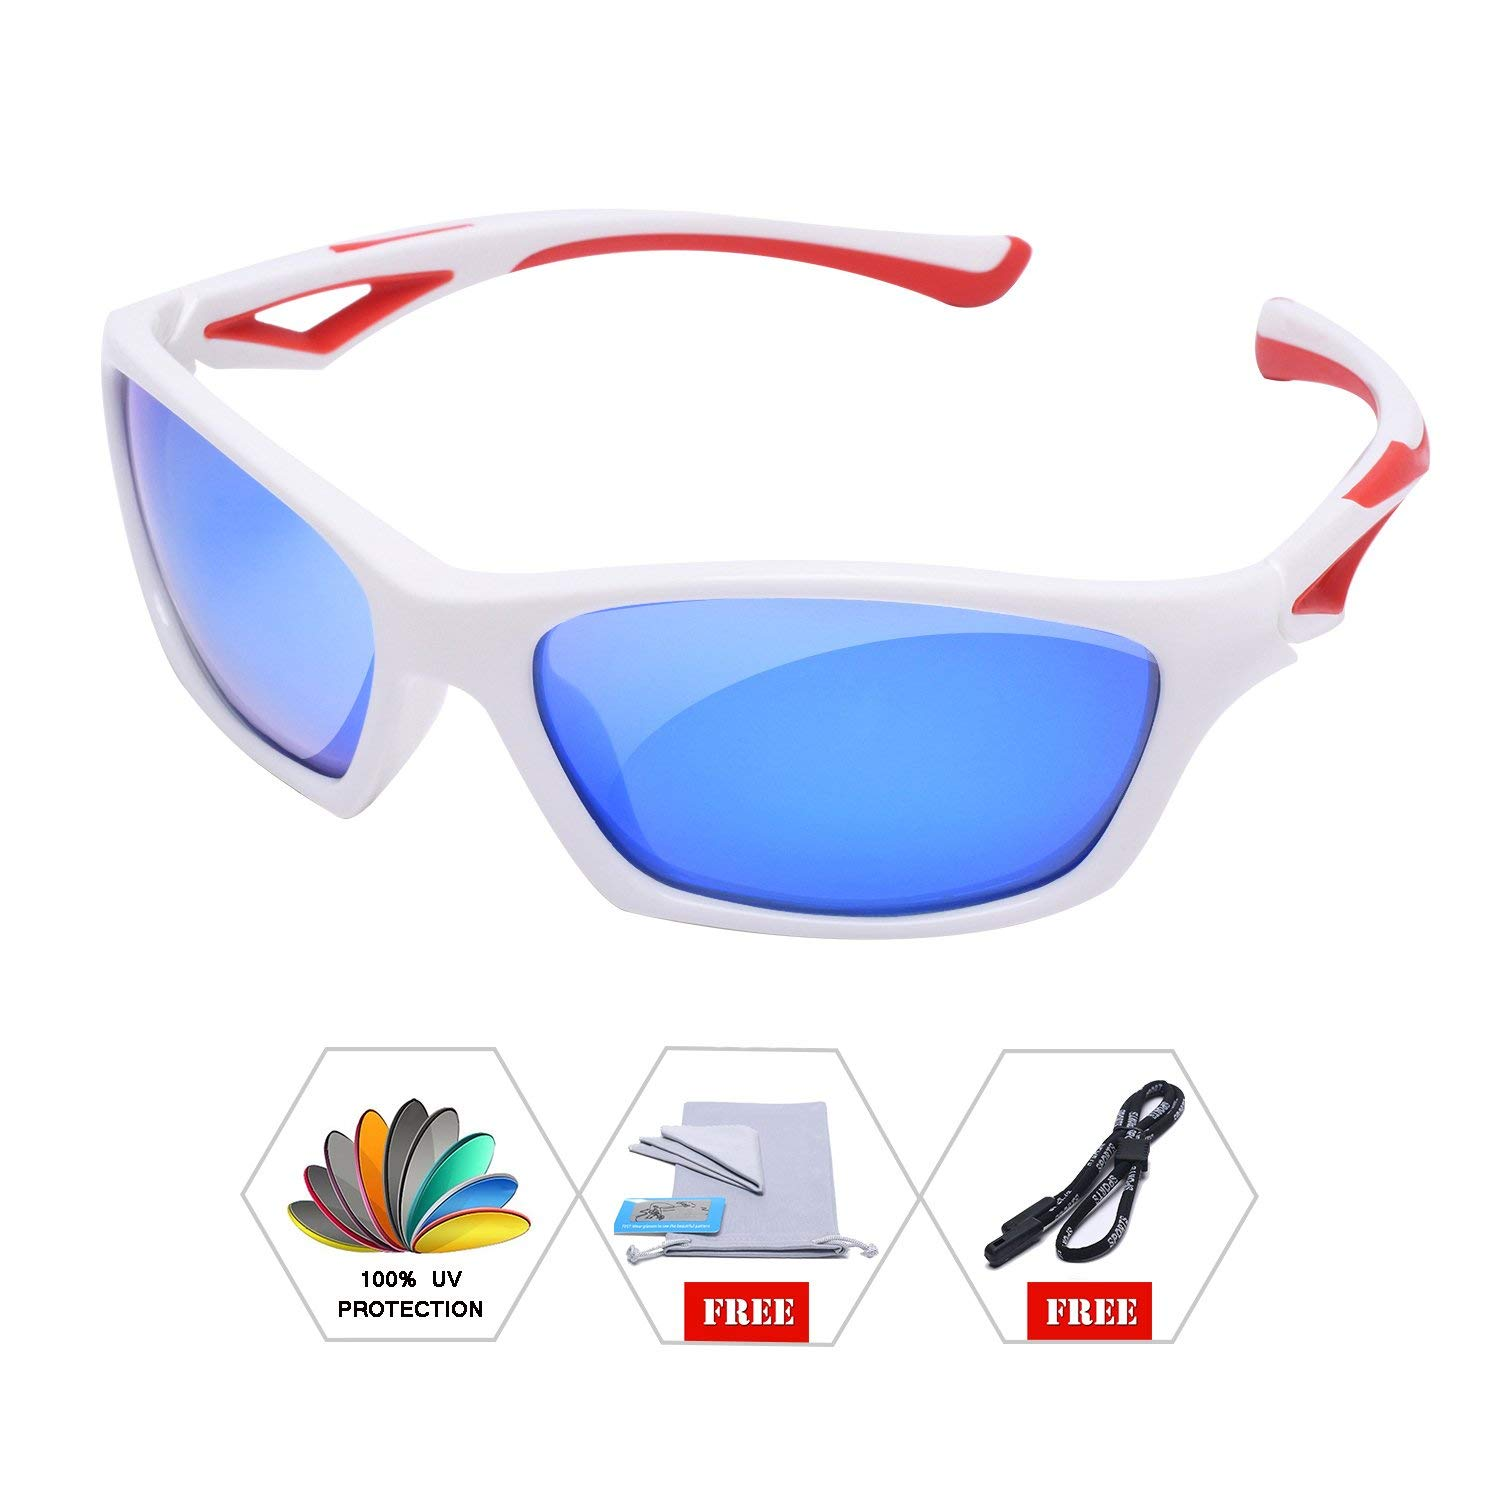 8a176c7115 Get Quotations · AODUOKE Sports Polarized Sunglasses For Kids Children Boys  And Girls Shades With Strap TR90 Unbreakable Frame